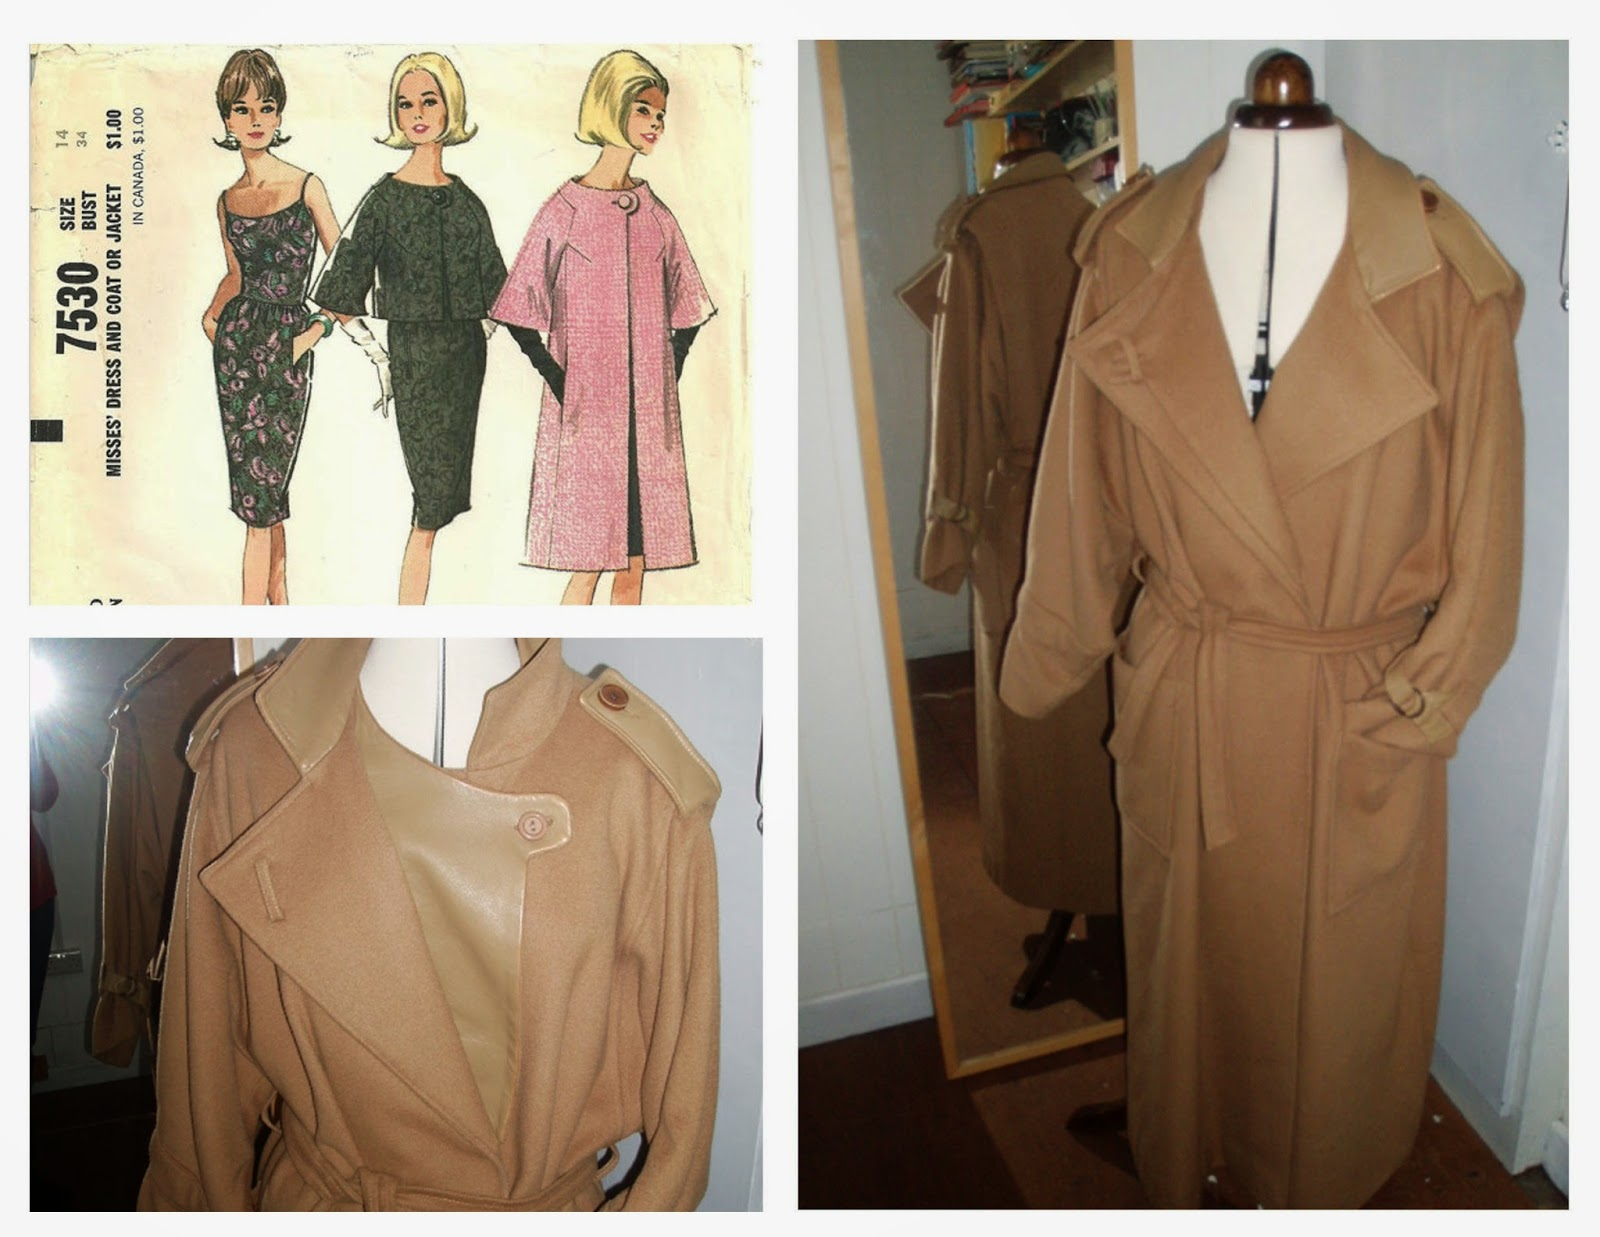 McCalls 7520 - pauline trigere coat - remakea coat to a coat